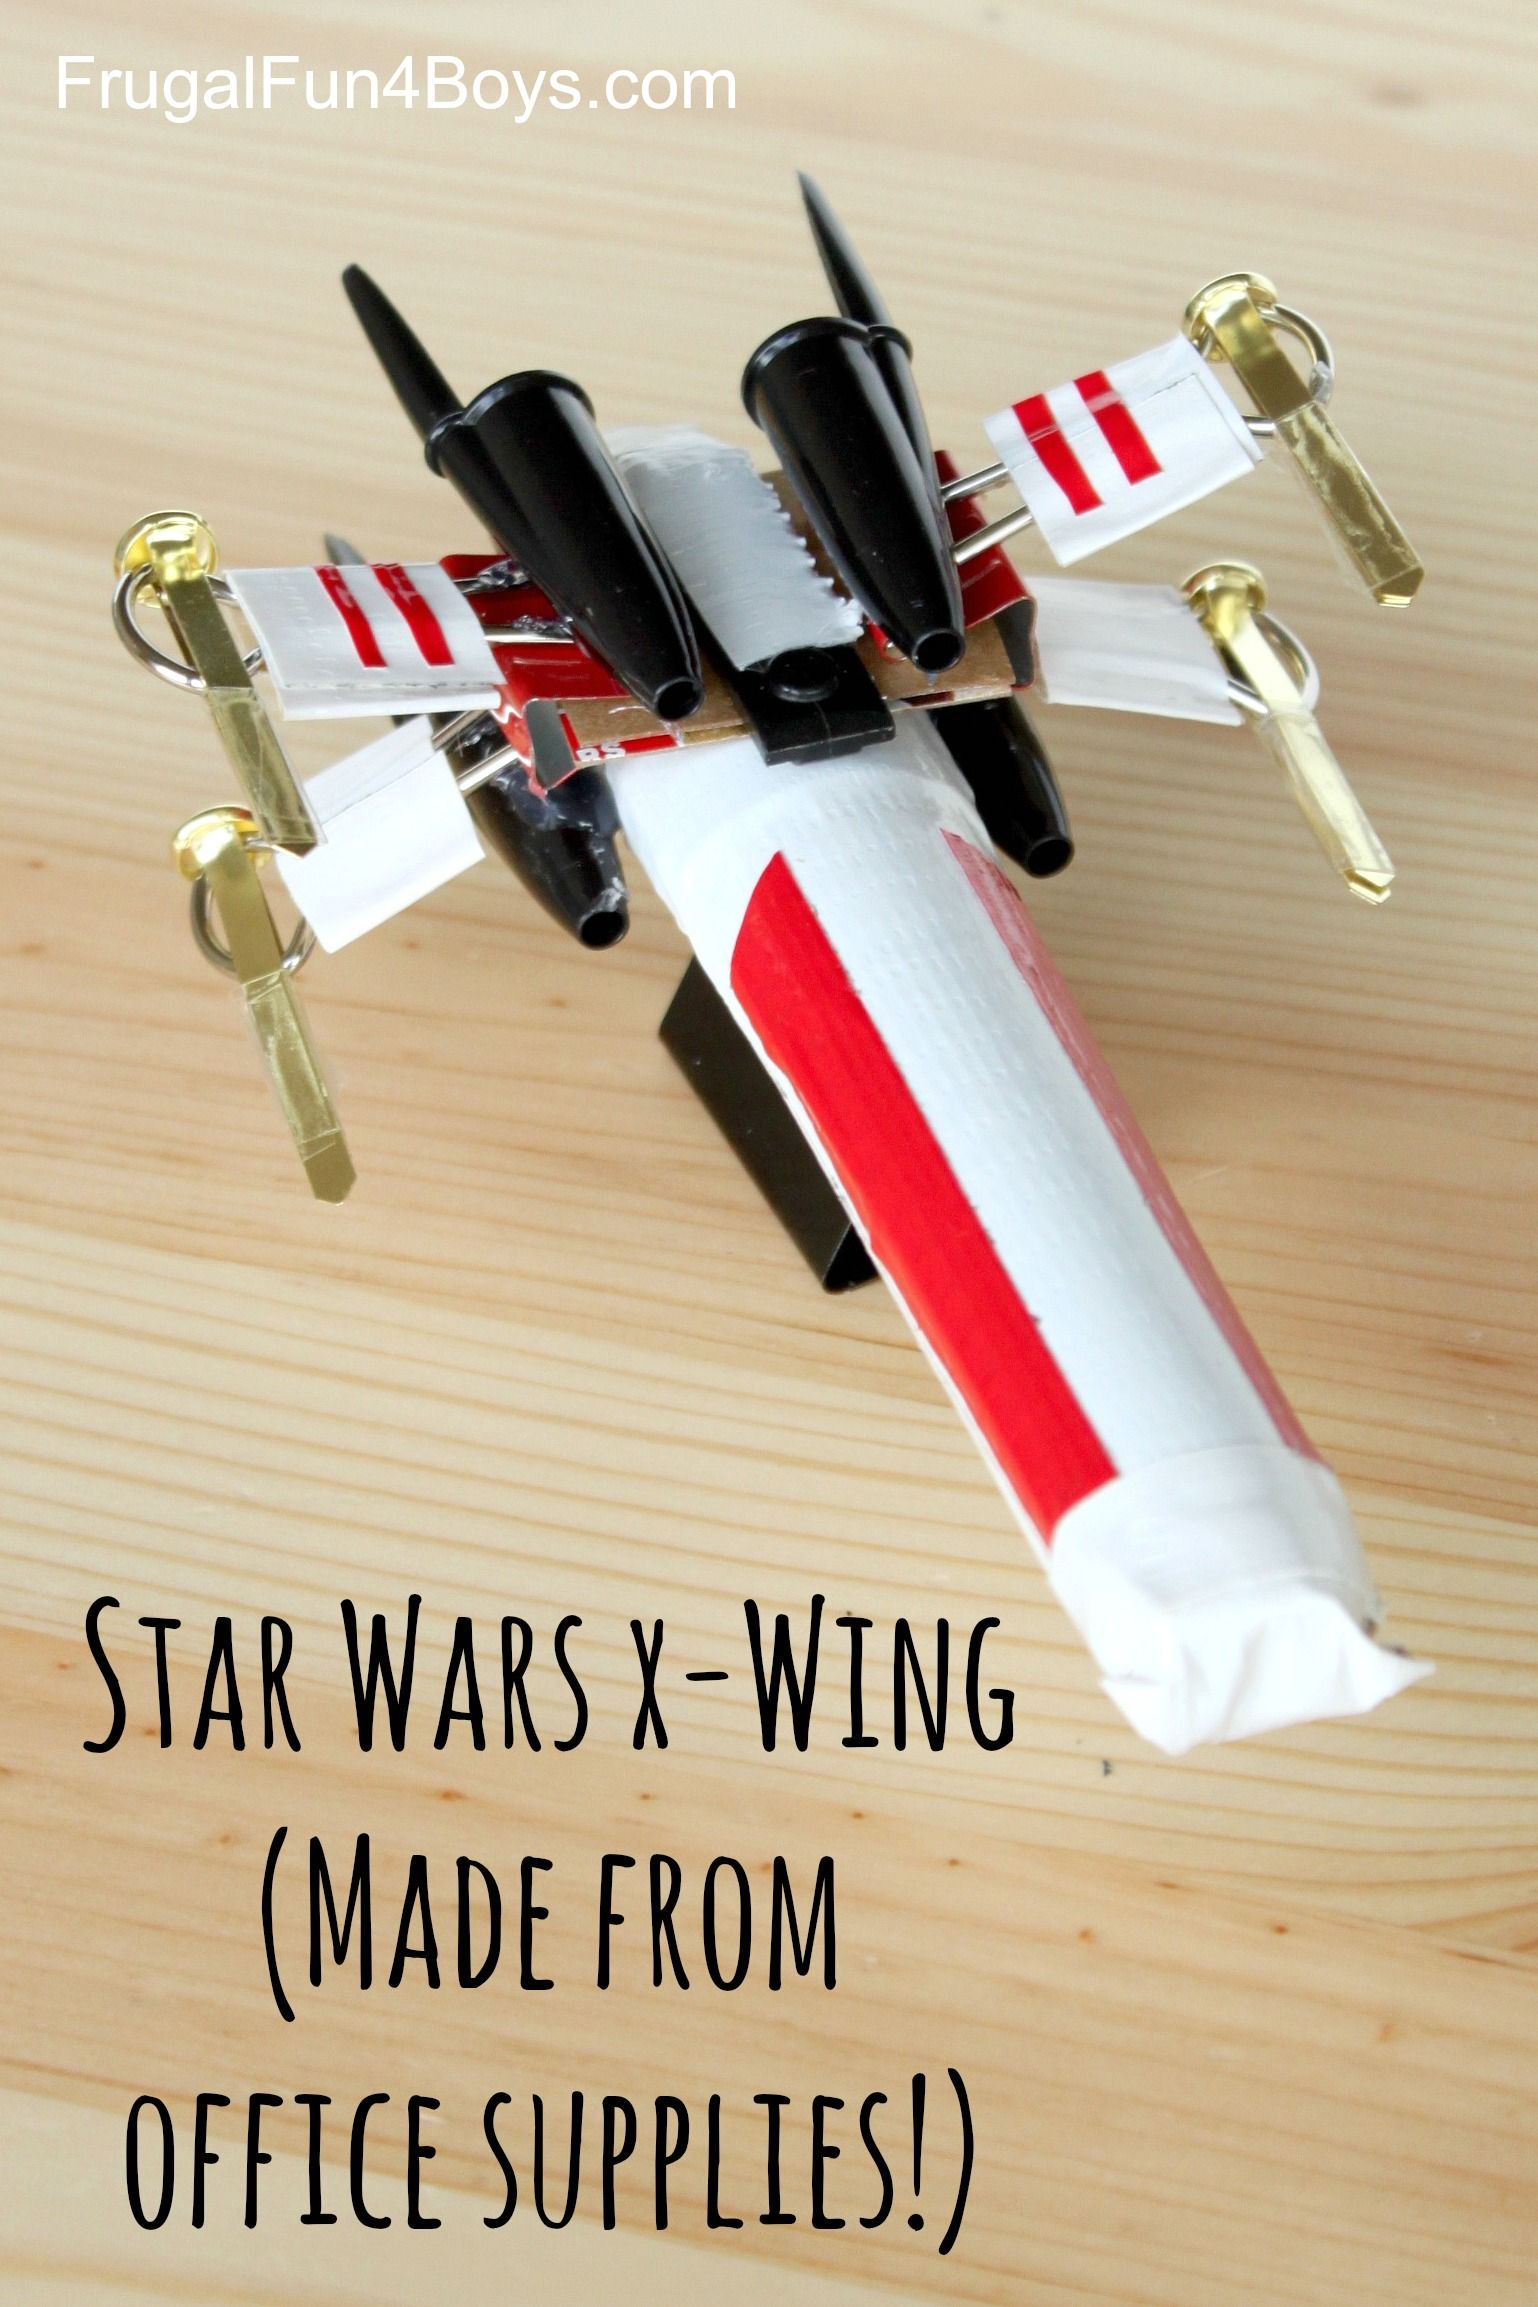 How To Make A Star Wars X Wing Starfighter Out Of Office Supplies Fold An Origami Naboo And Other Starships From Here Is Fun Craft For Kids That You Probably Have All The Materials